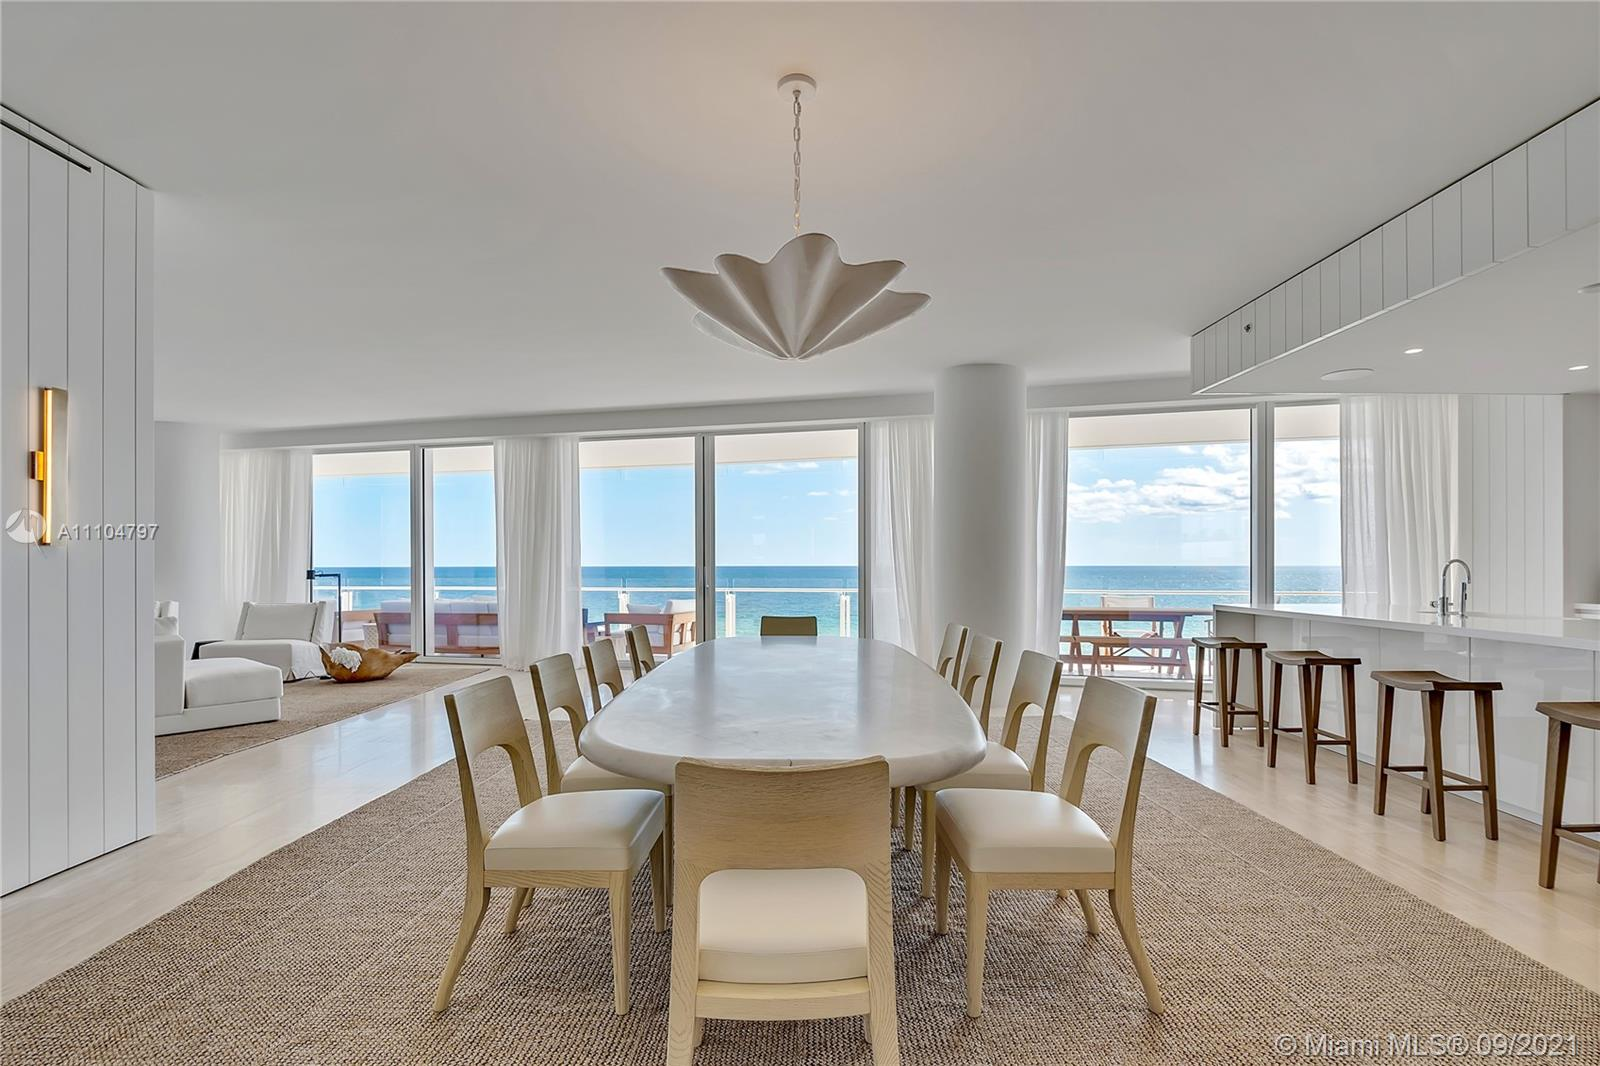 9001 Collins Ave, Unit #S-511 Luxury Real Estate